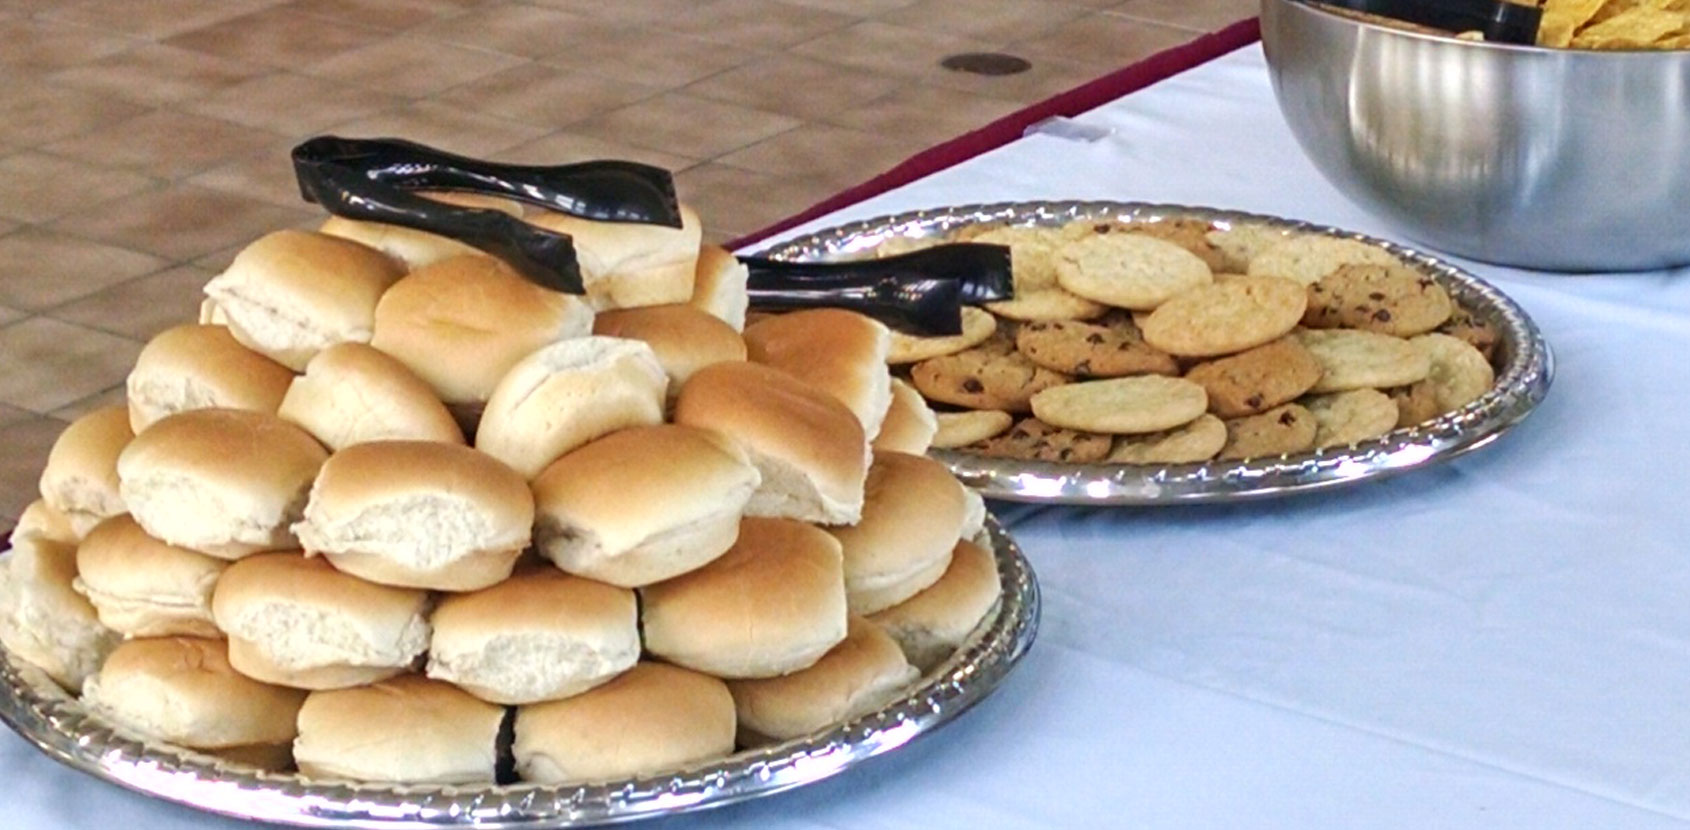 Assortment of dinner rolls, cookies and other delicious food